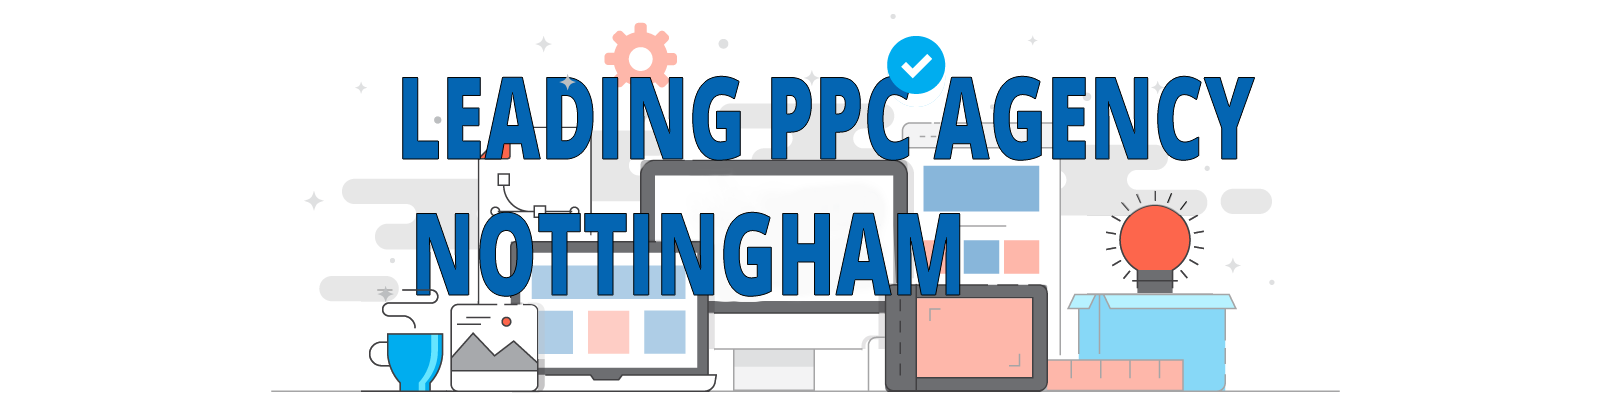 Leading-PPC-Agency-Nottingham